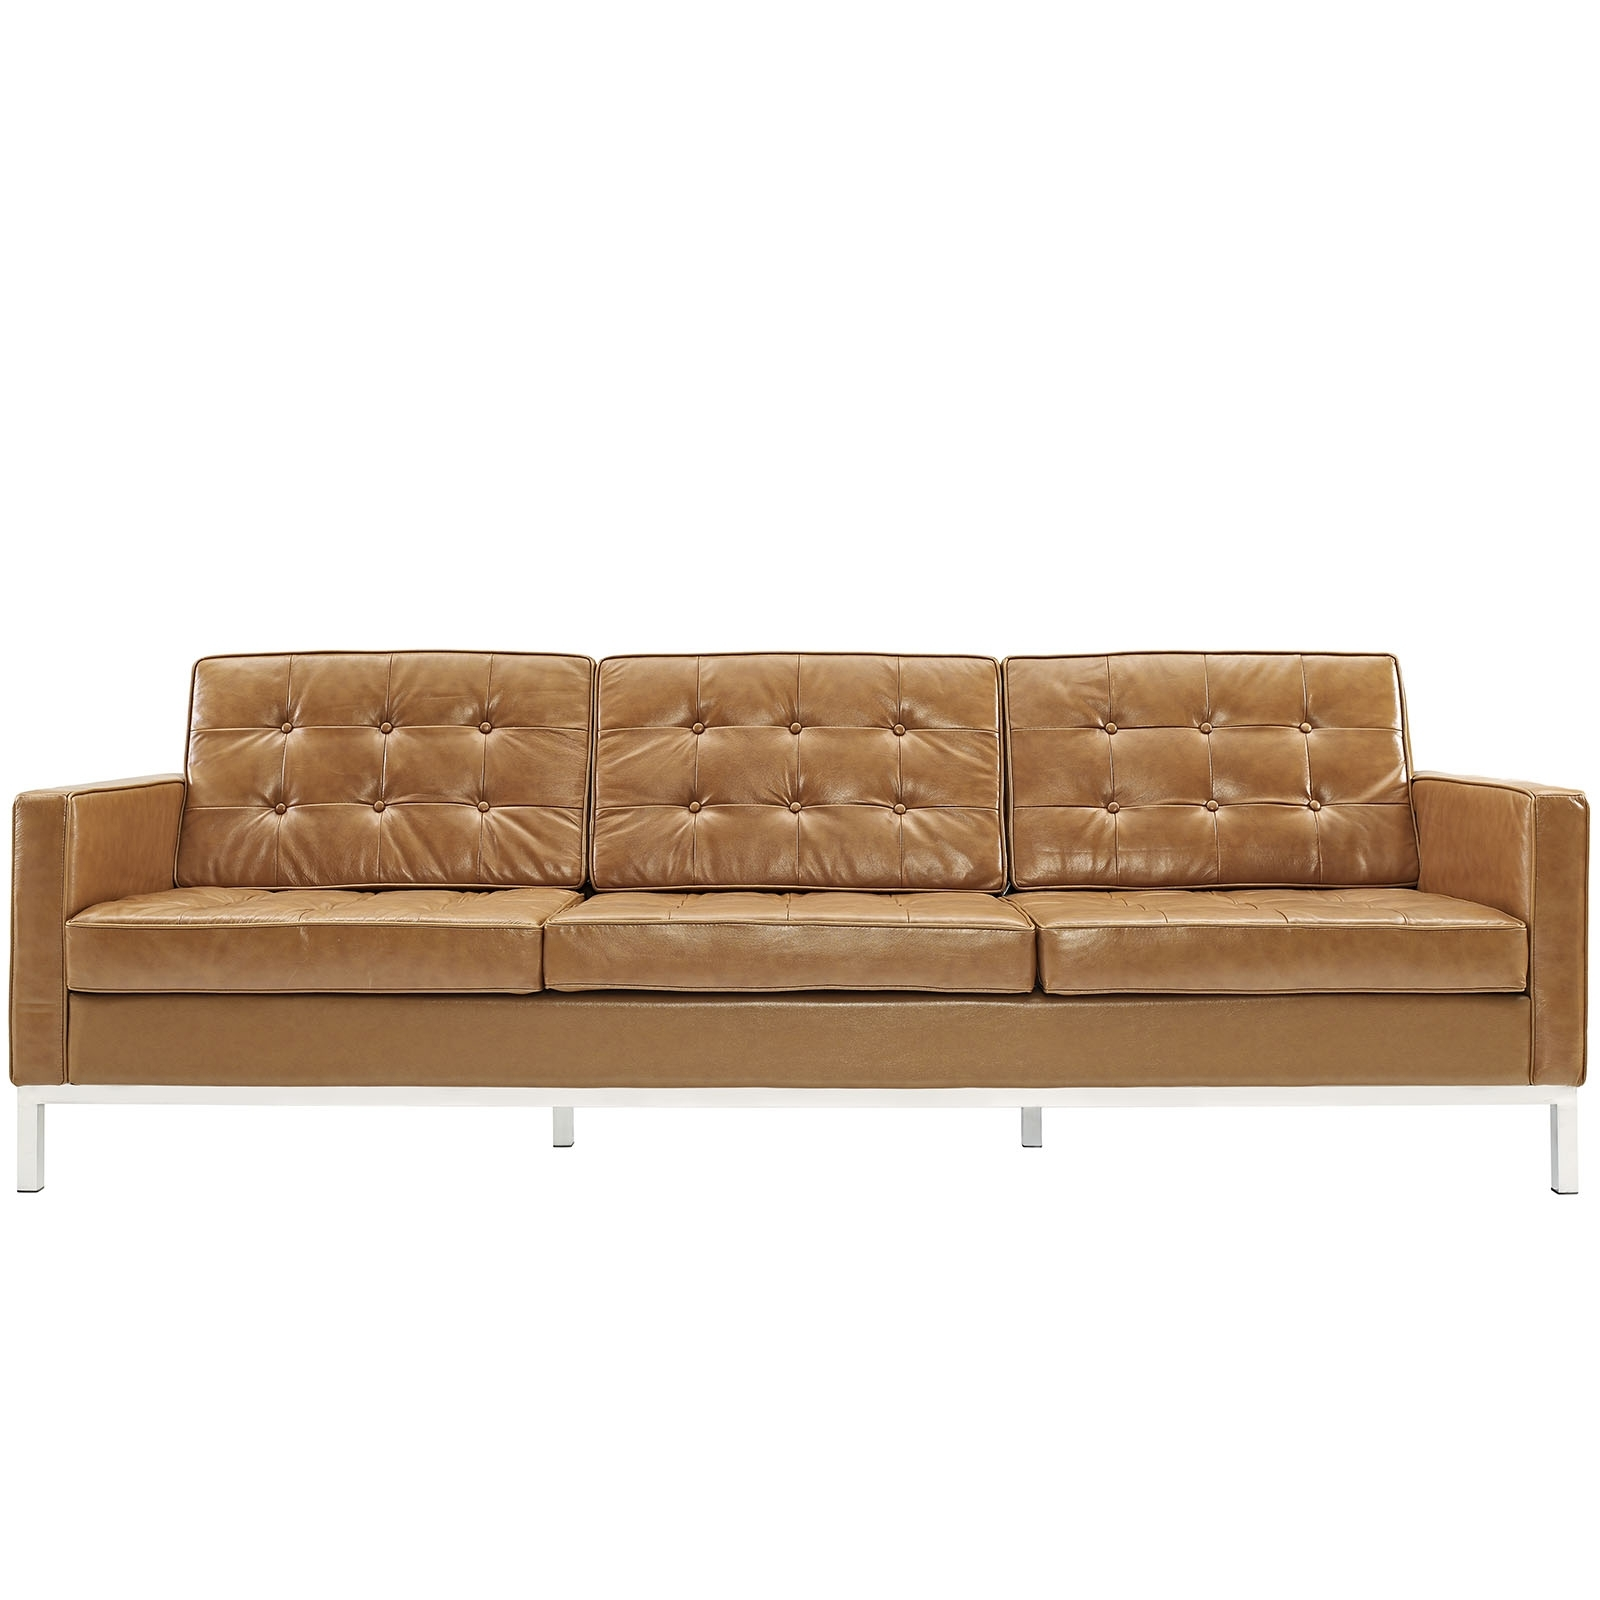 Florence Knoll Style Sofa Couch – Leather Intended For Latest Florence Large Sofas (View 7 of 20)